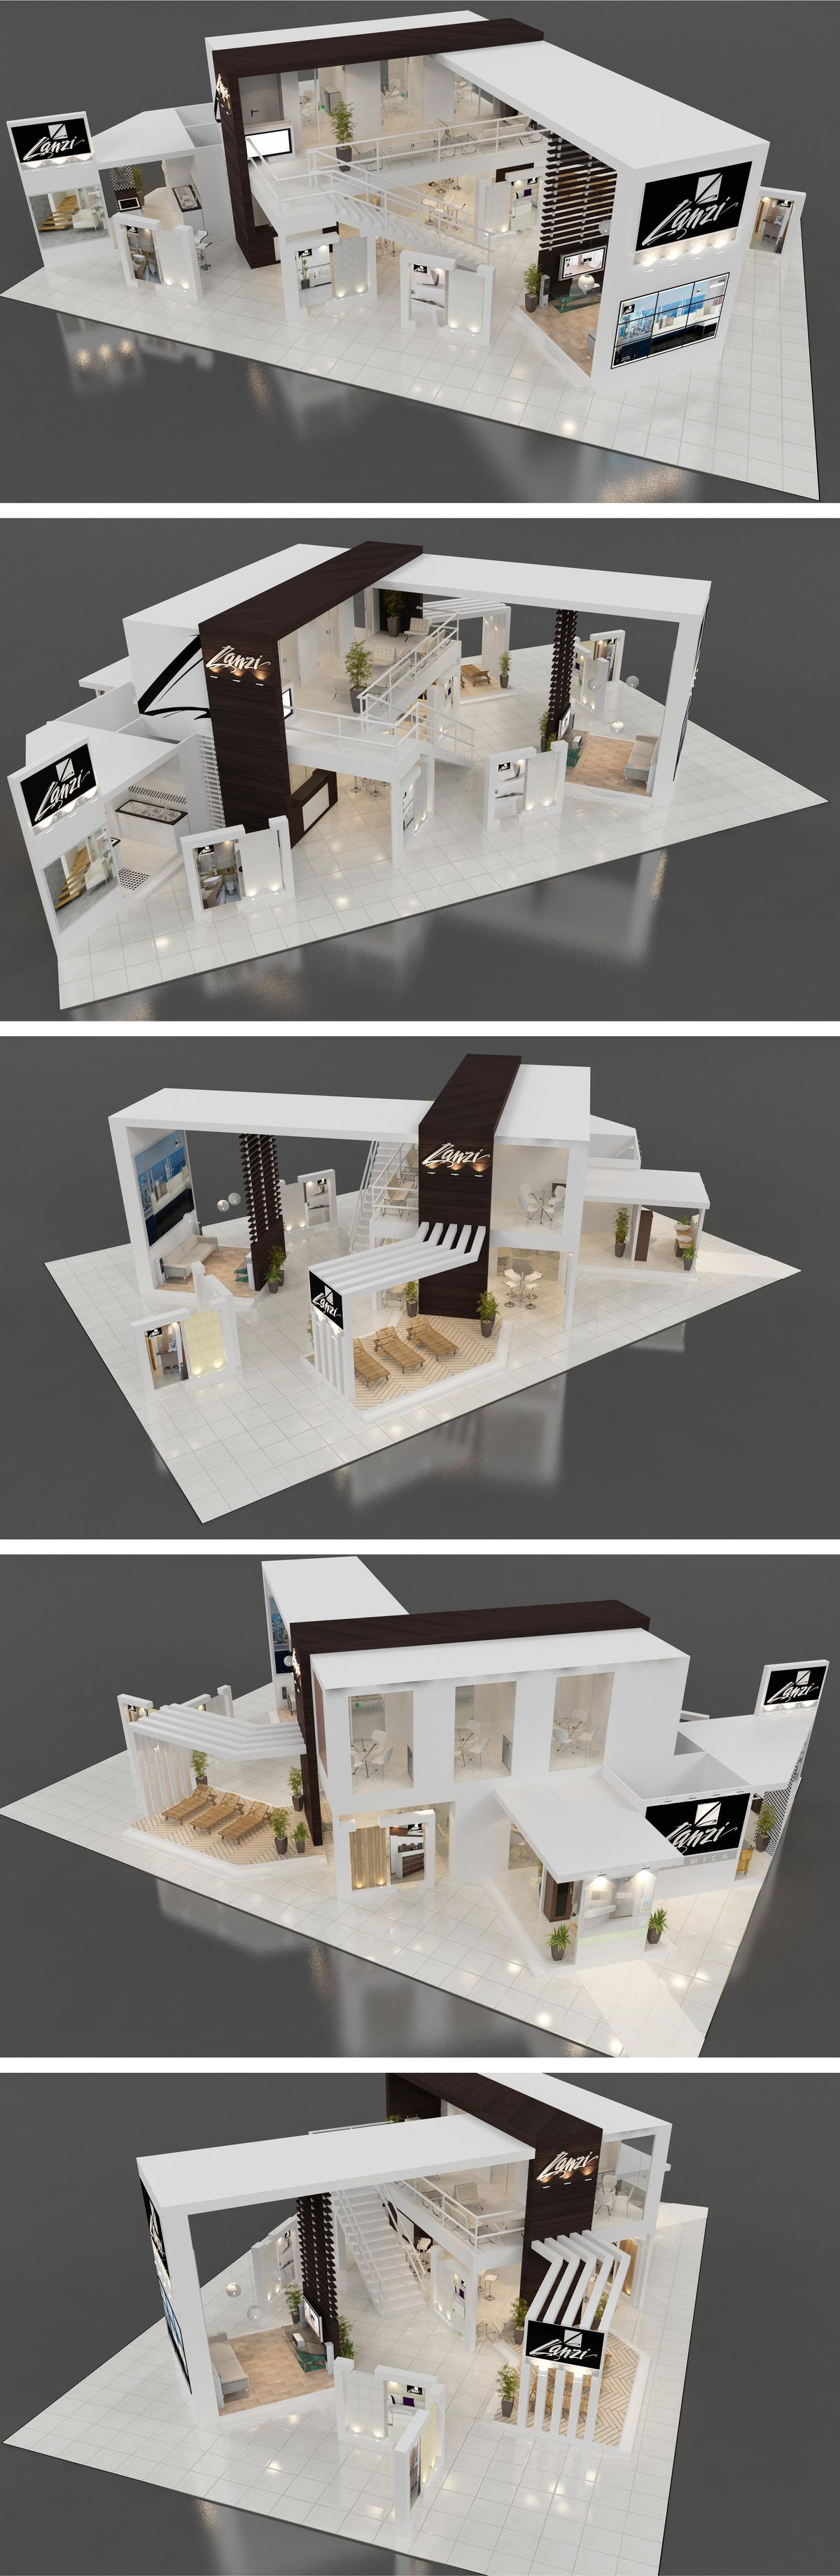 Exhibition Stand Builders Melbourne : Ideas about exhibition stall design on pinterest